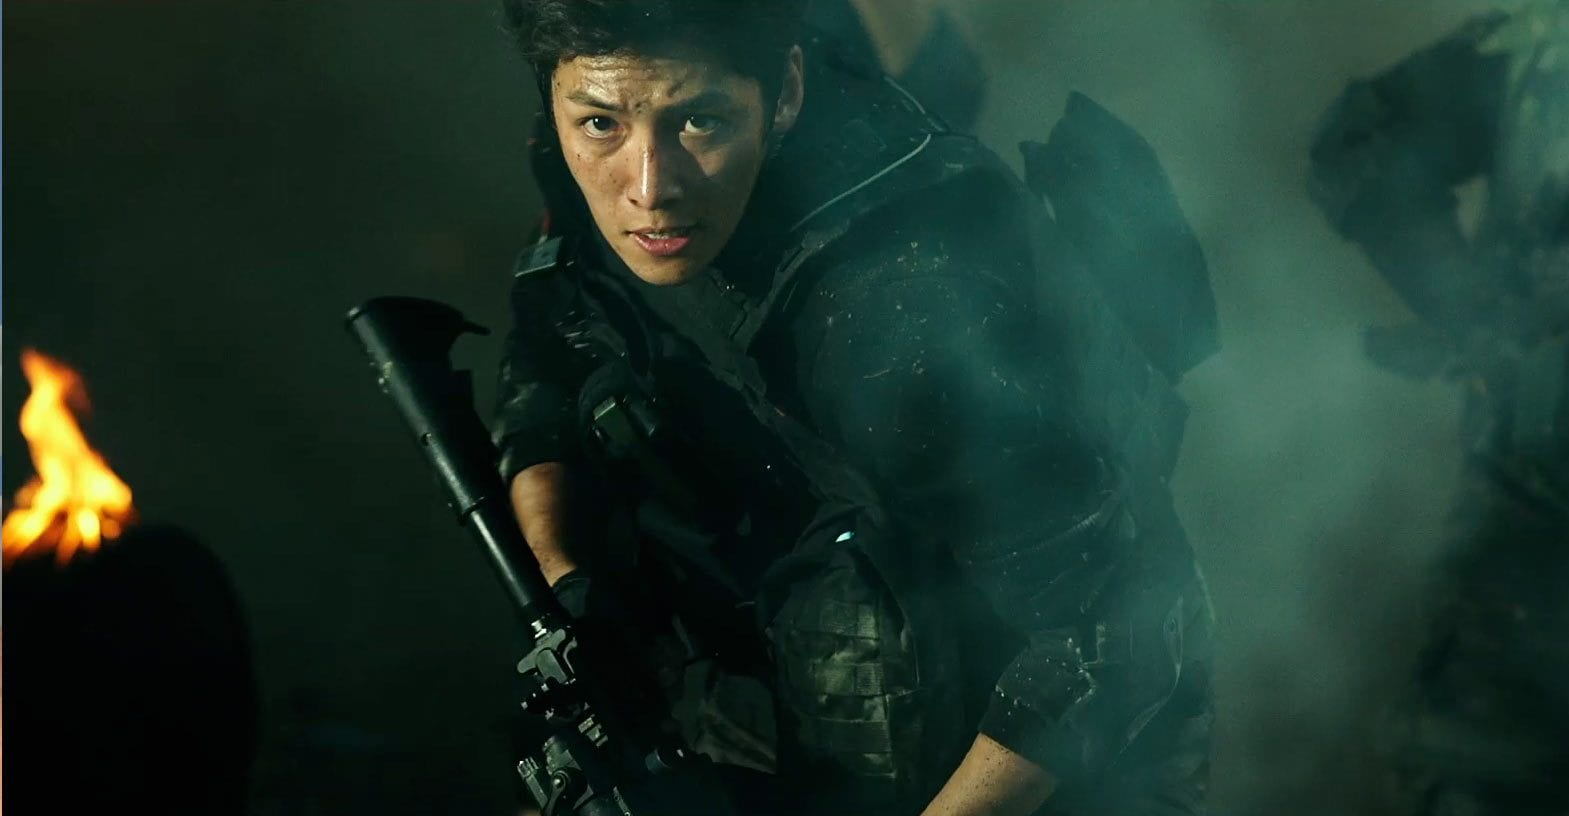 """WTK Review: Ji Chang Wook's New, Action-Packed Film """"Fabricated City"""""""